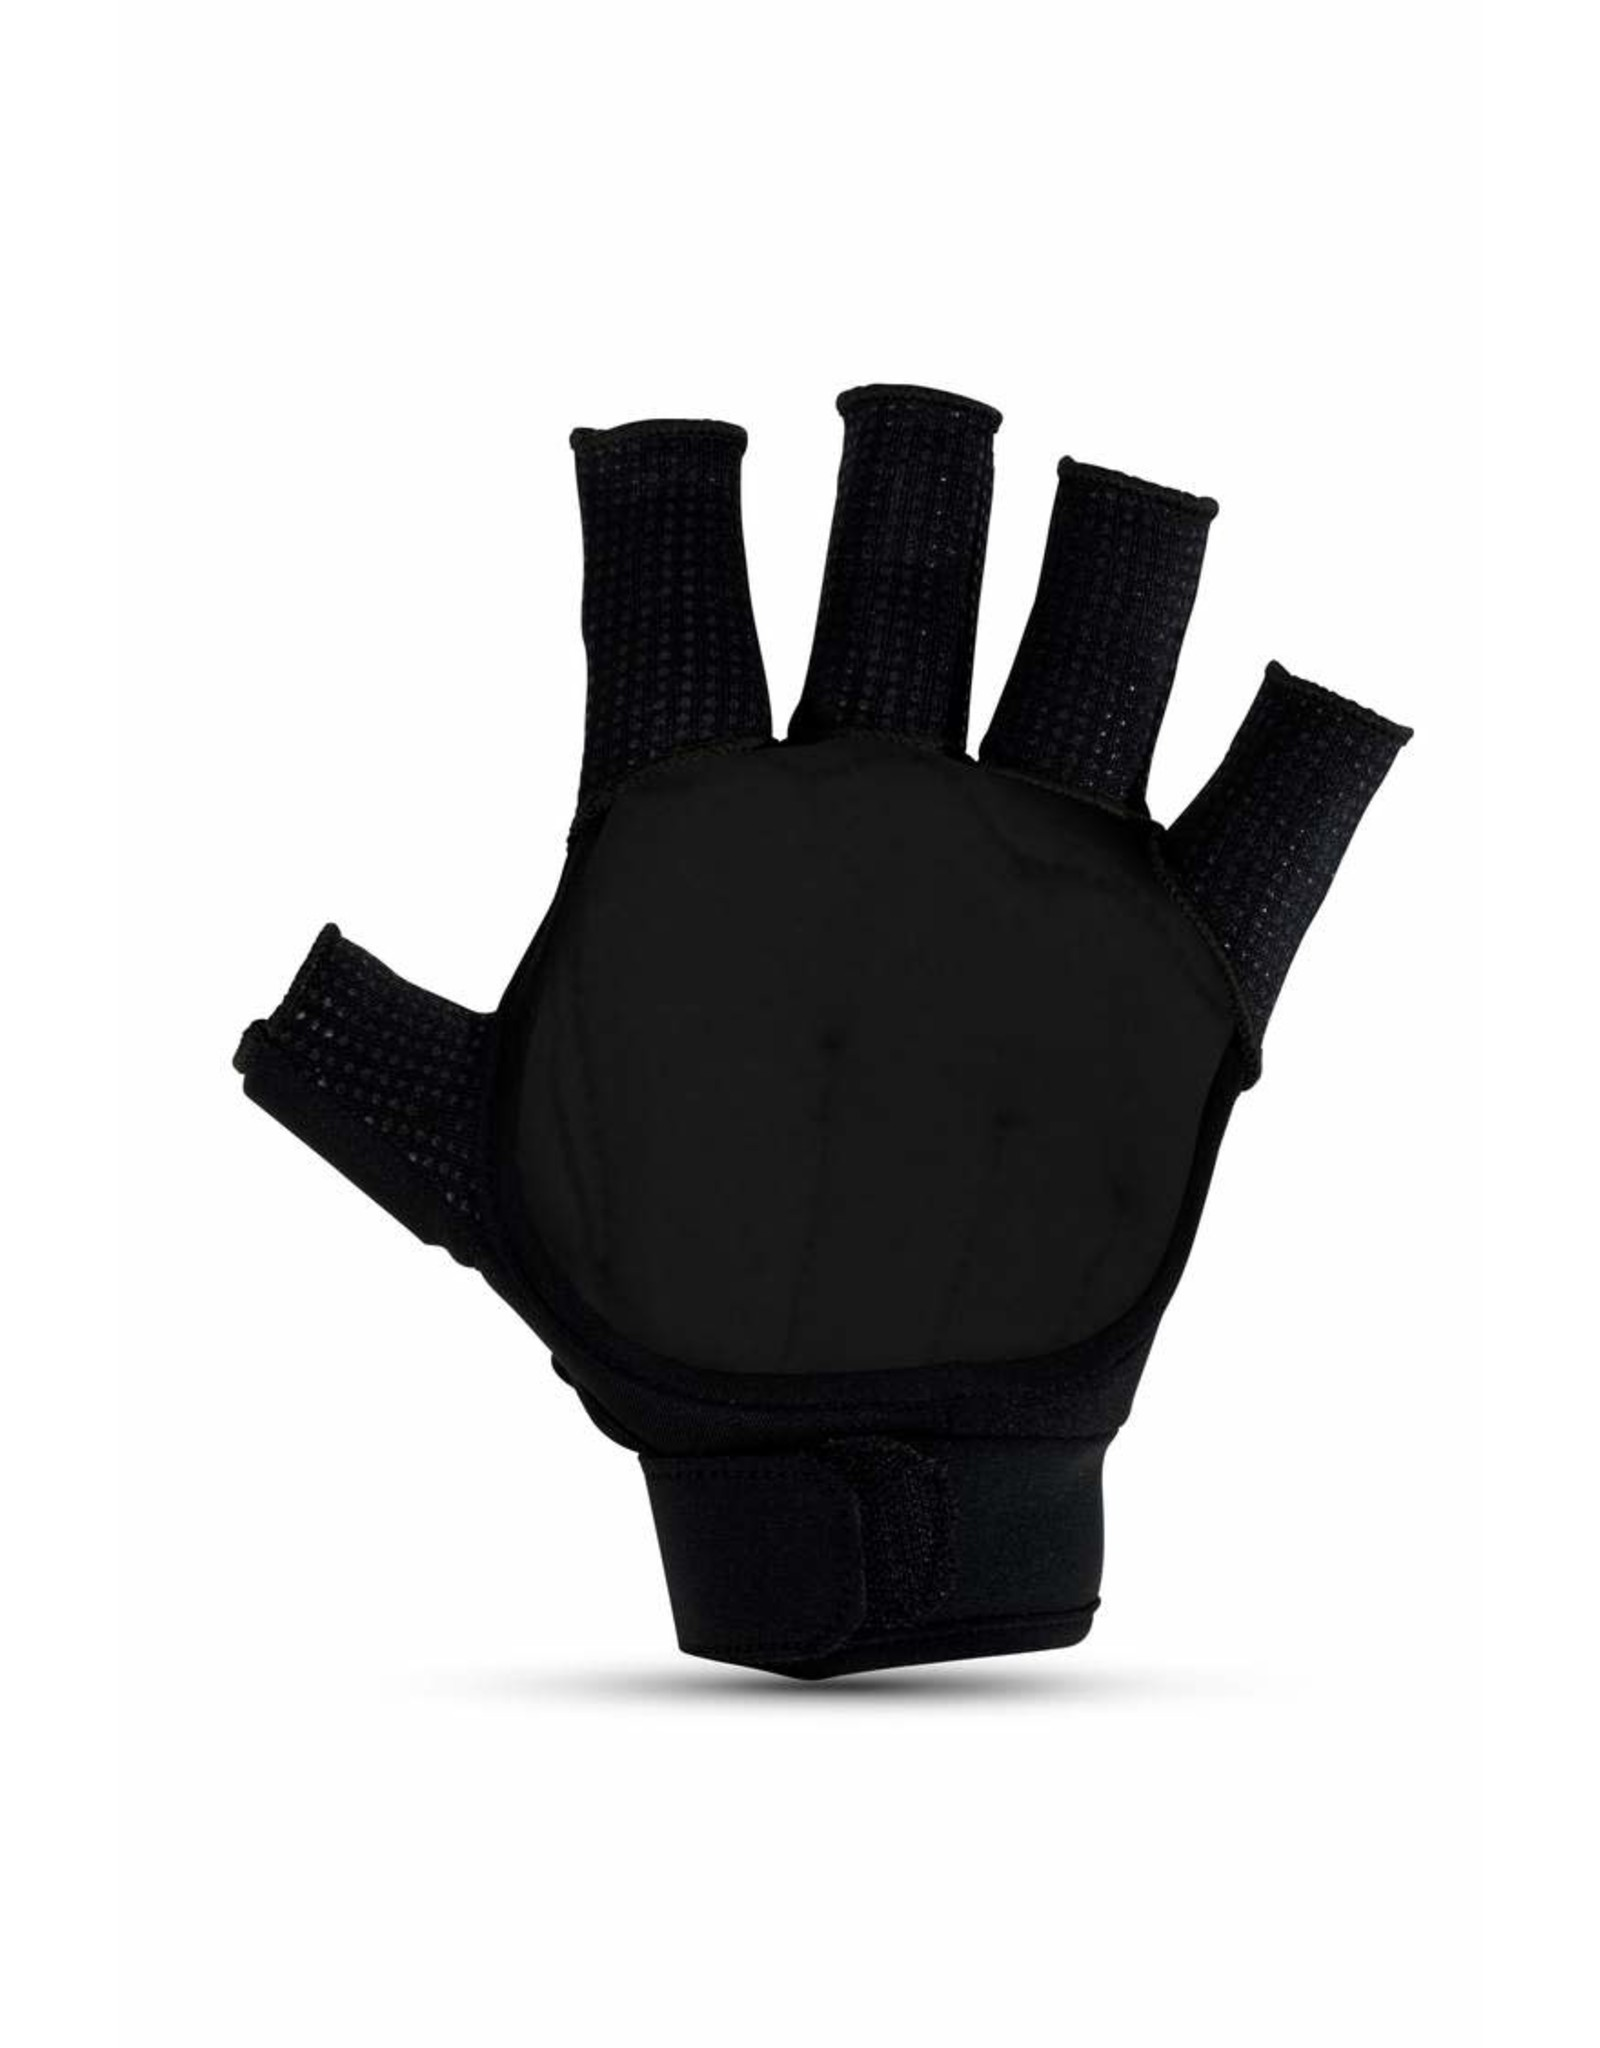 NAKED NAKED PROTEC GLOVE LEFT HAND 20-21